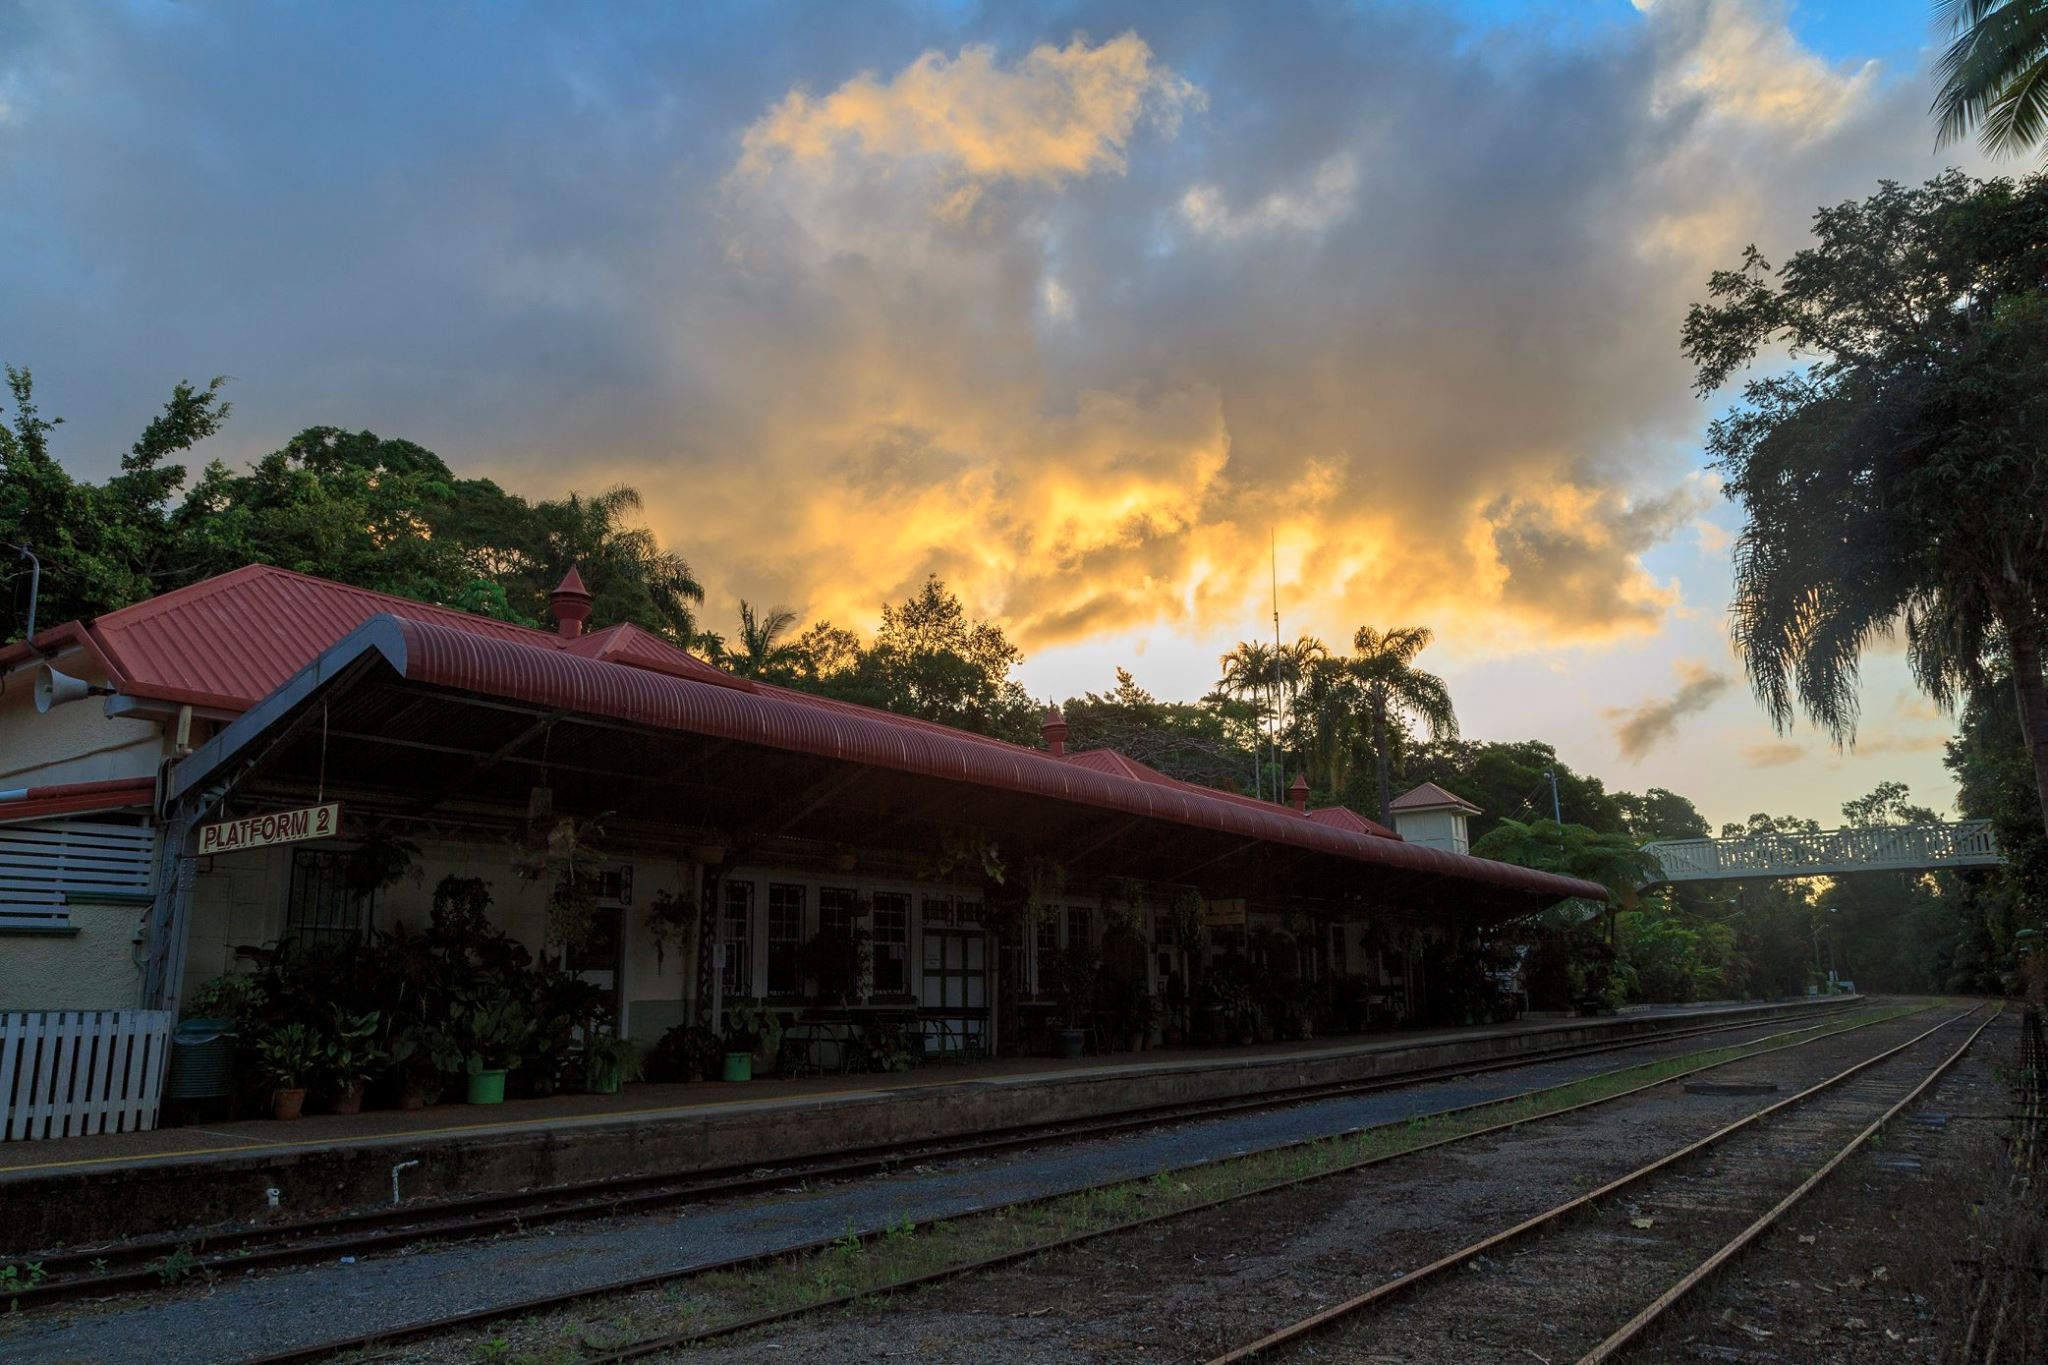 Train station at Kuranda